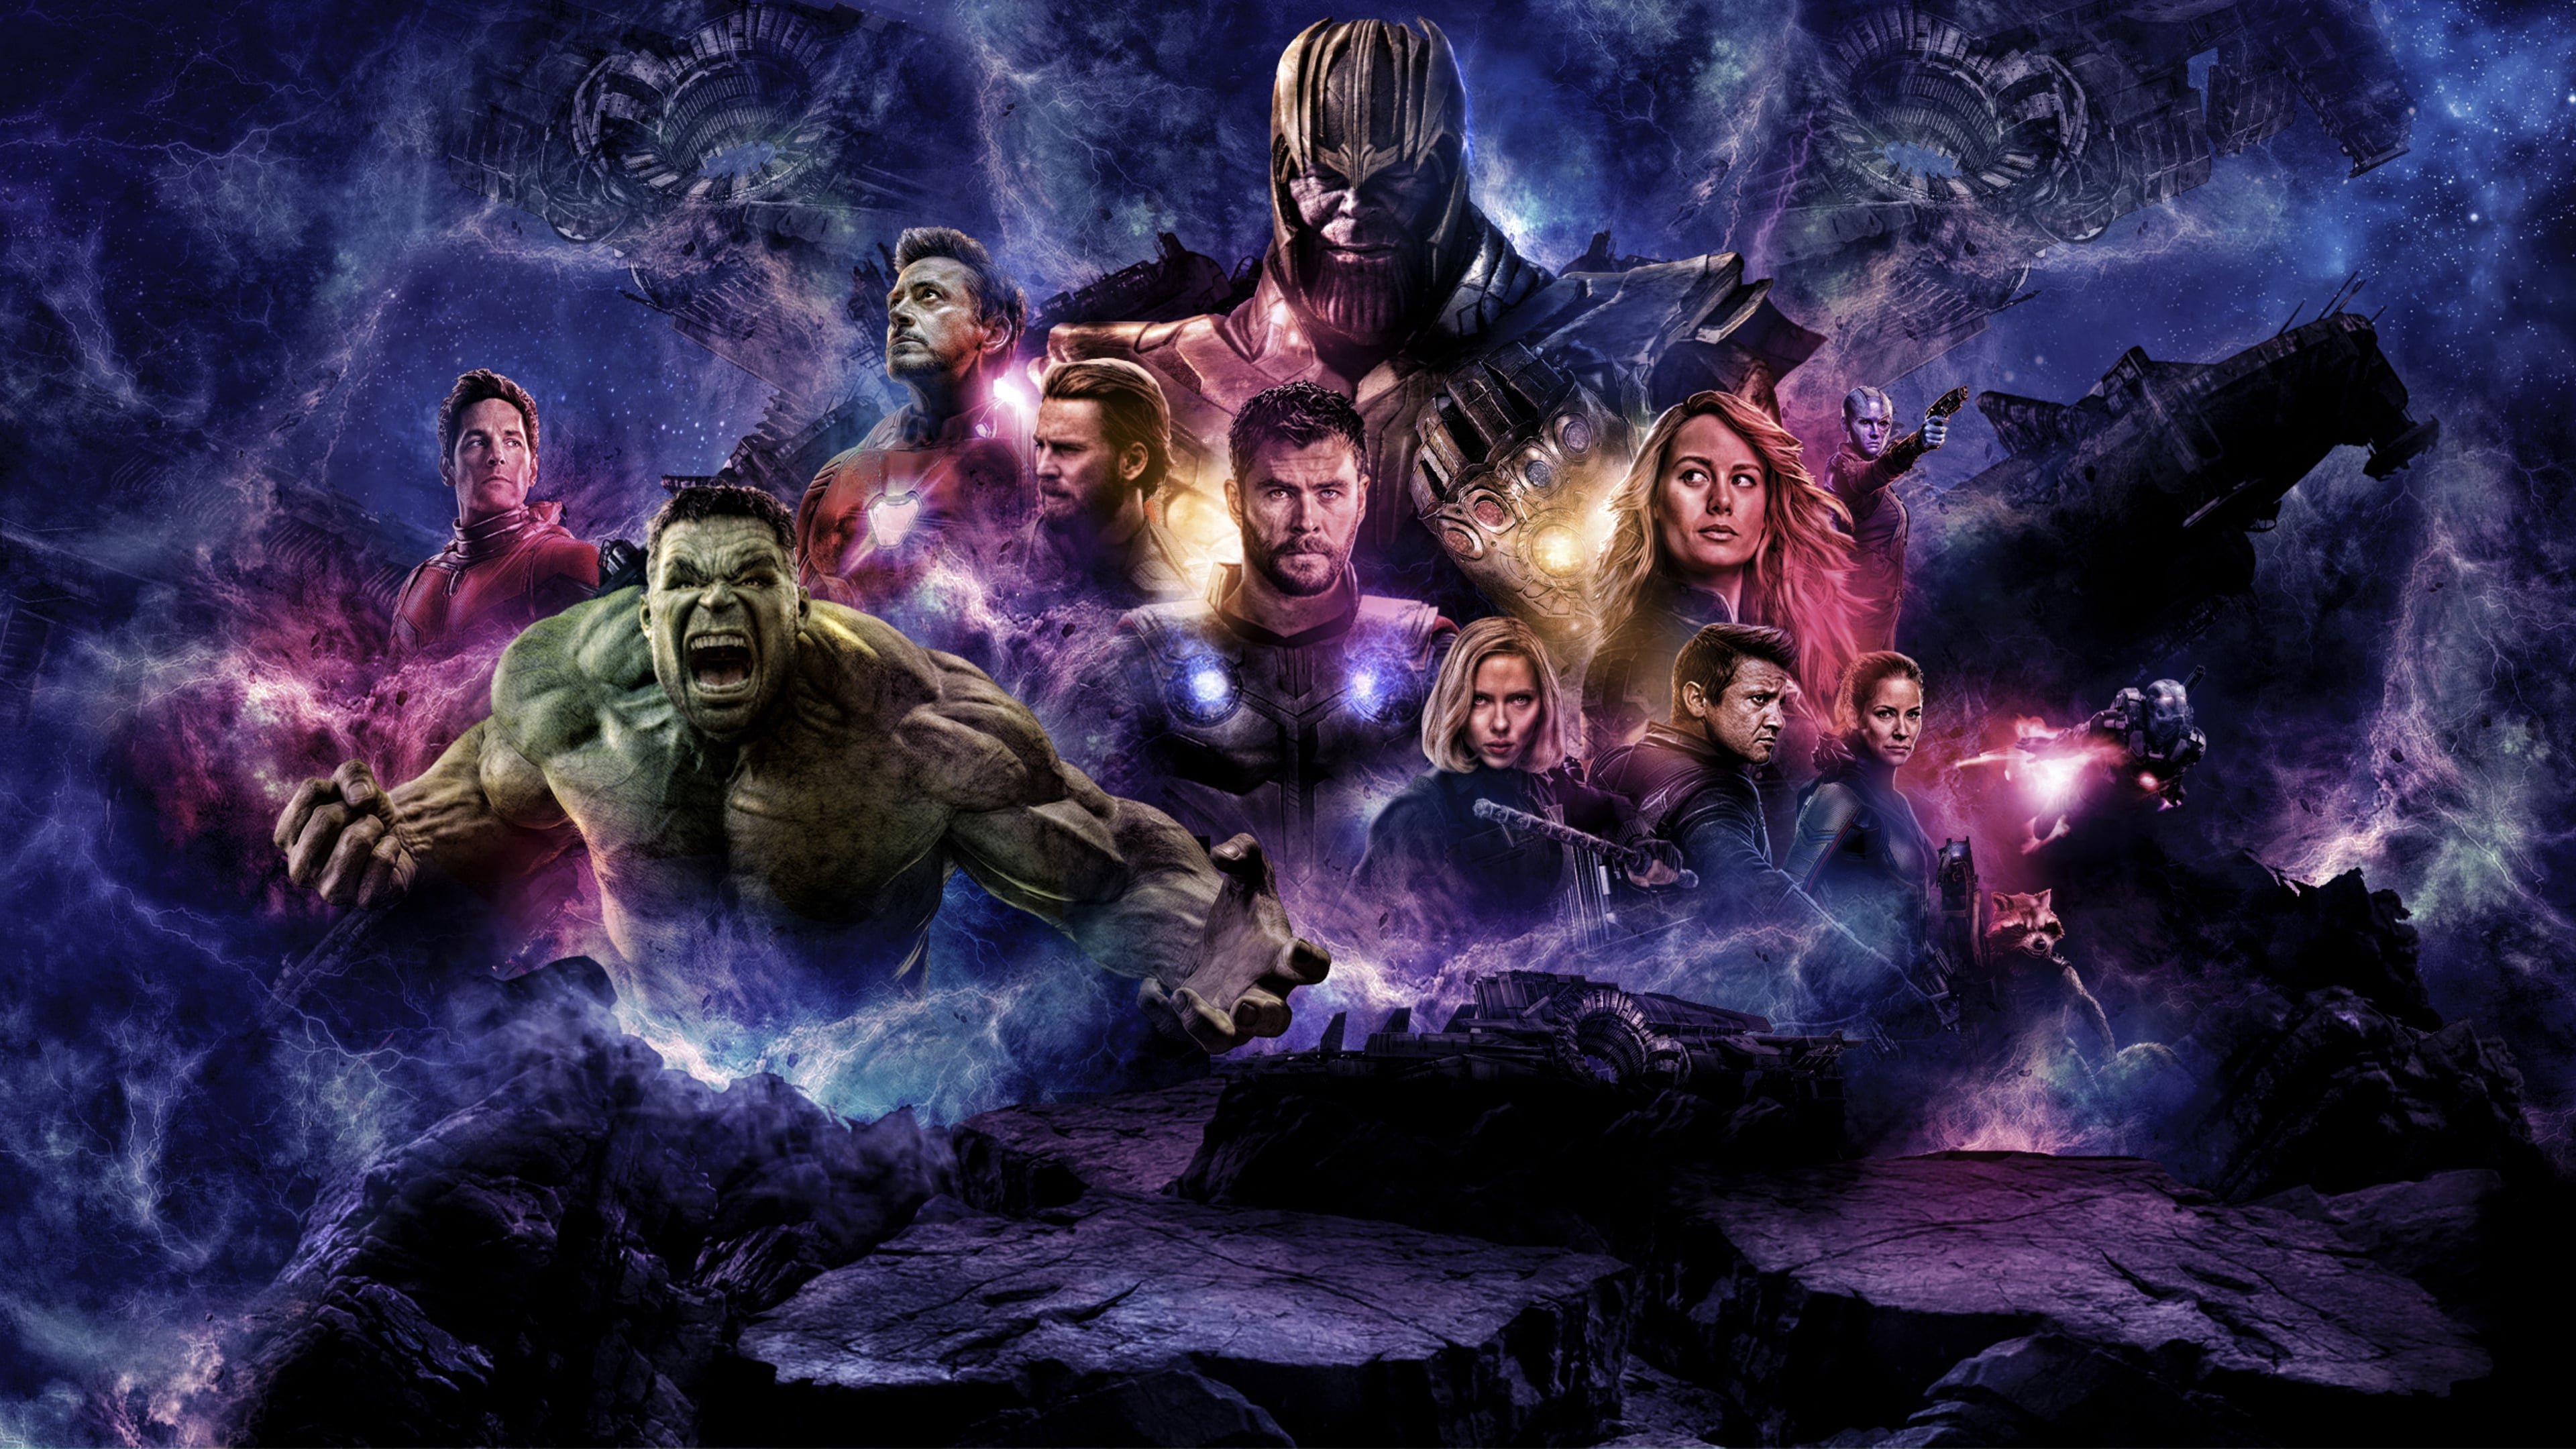 Directed by Anthony Russo Joe Russo With Brie Larson Bradley Cooper Elizabeth Olsen Chris Hemsworth